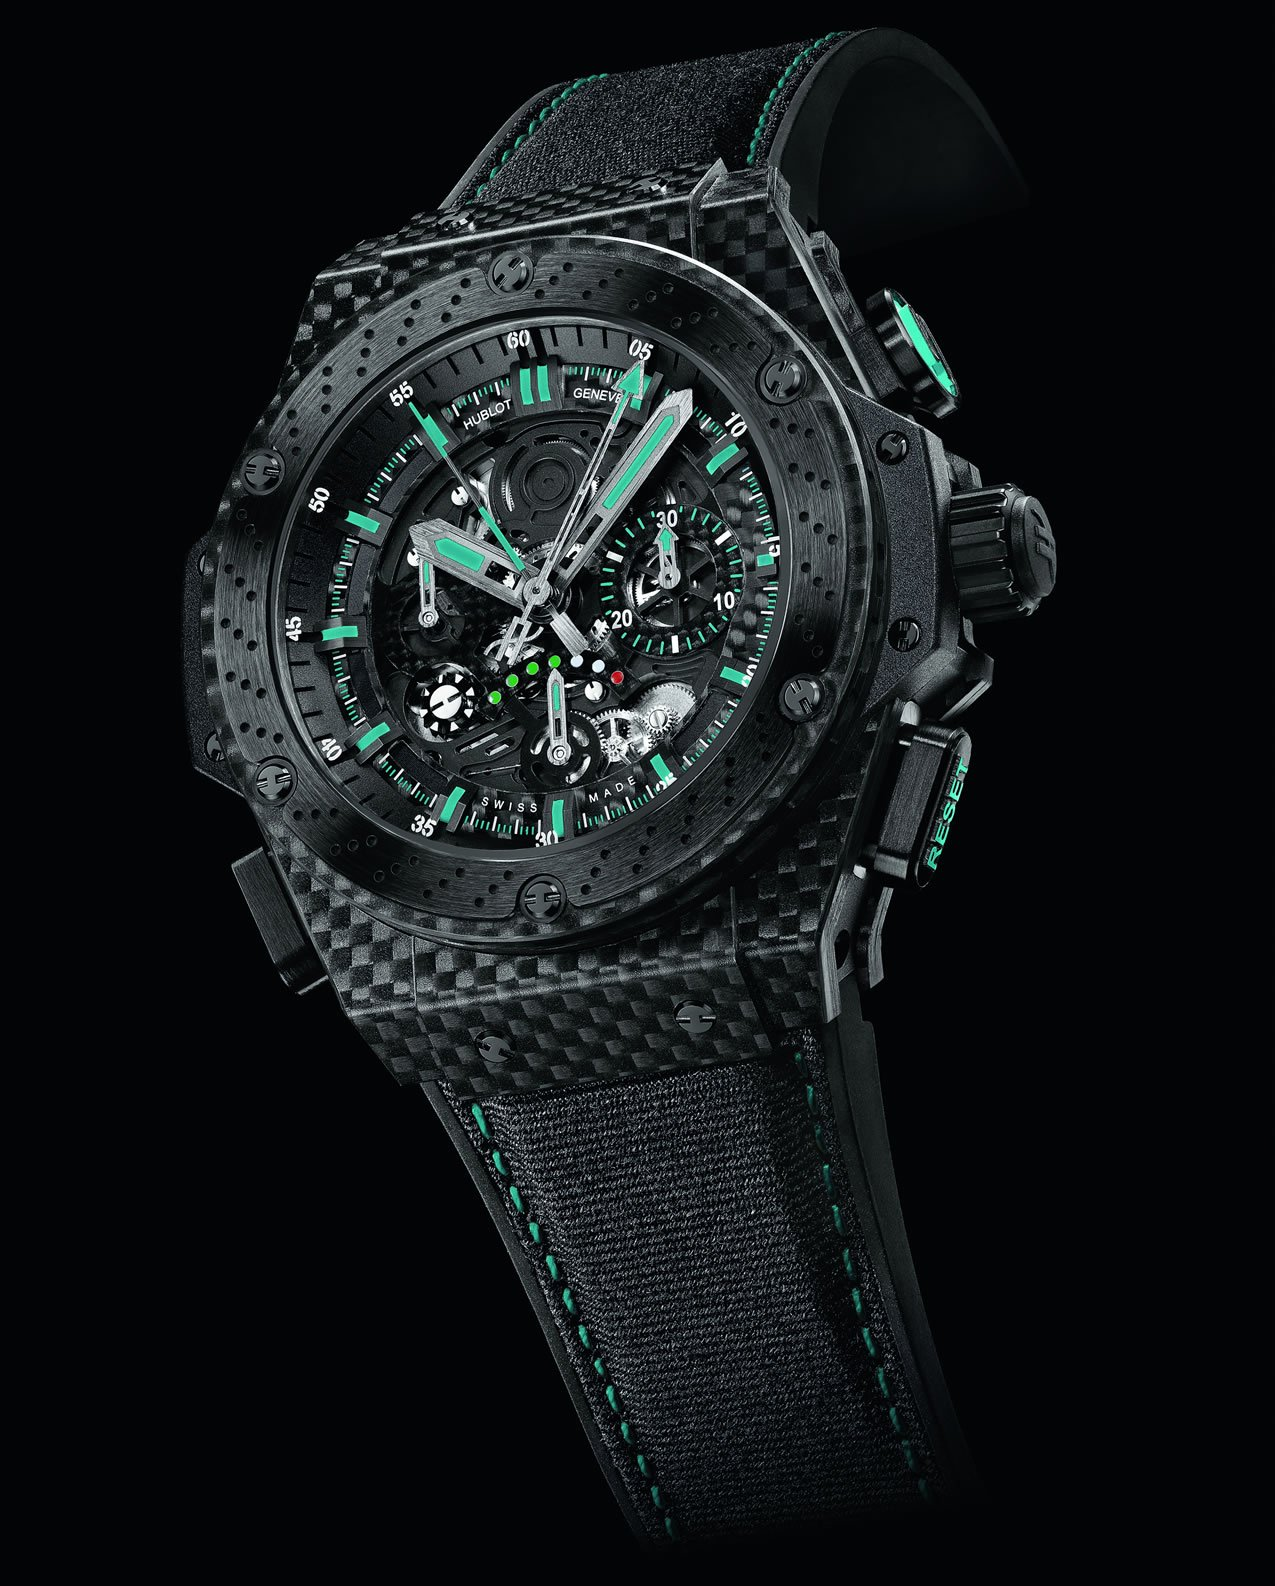 Hublot F1 King Yas Marina Circuit 4 on yas marina circuit